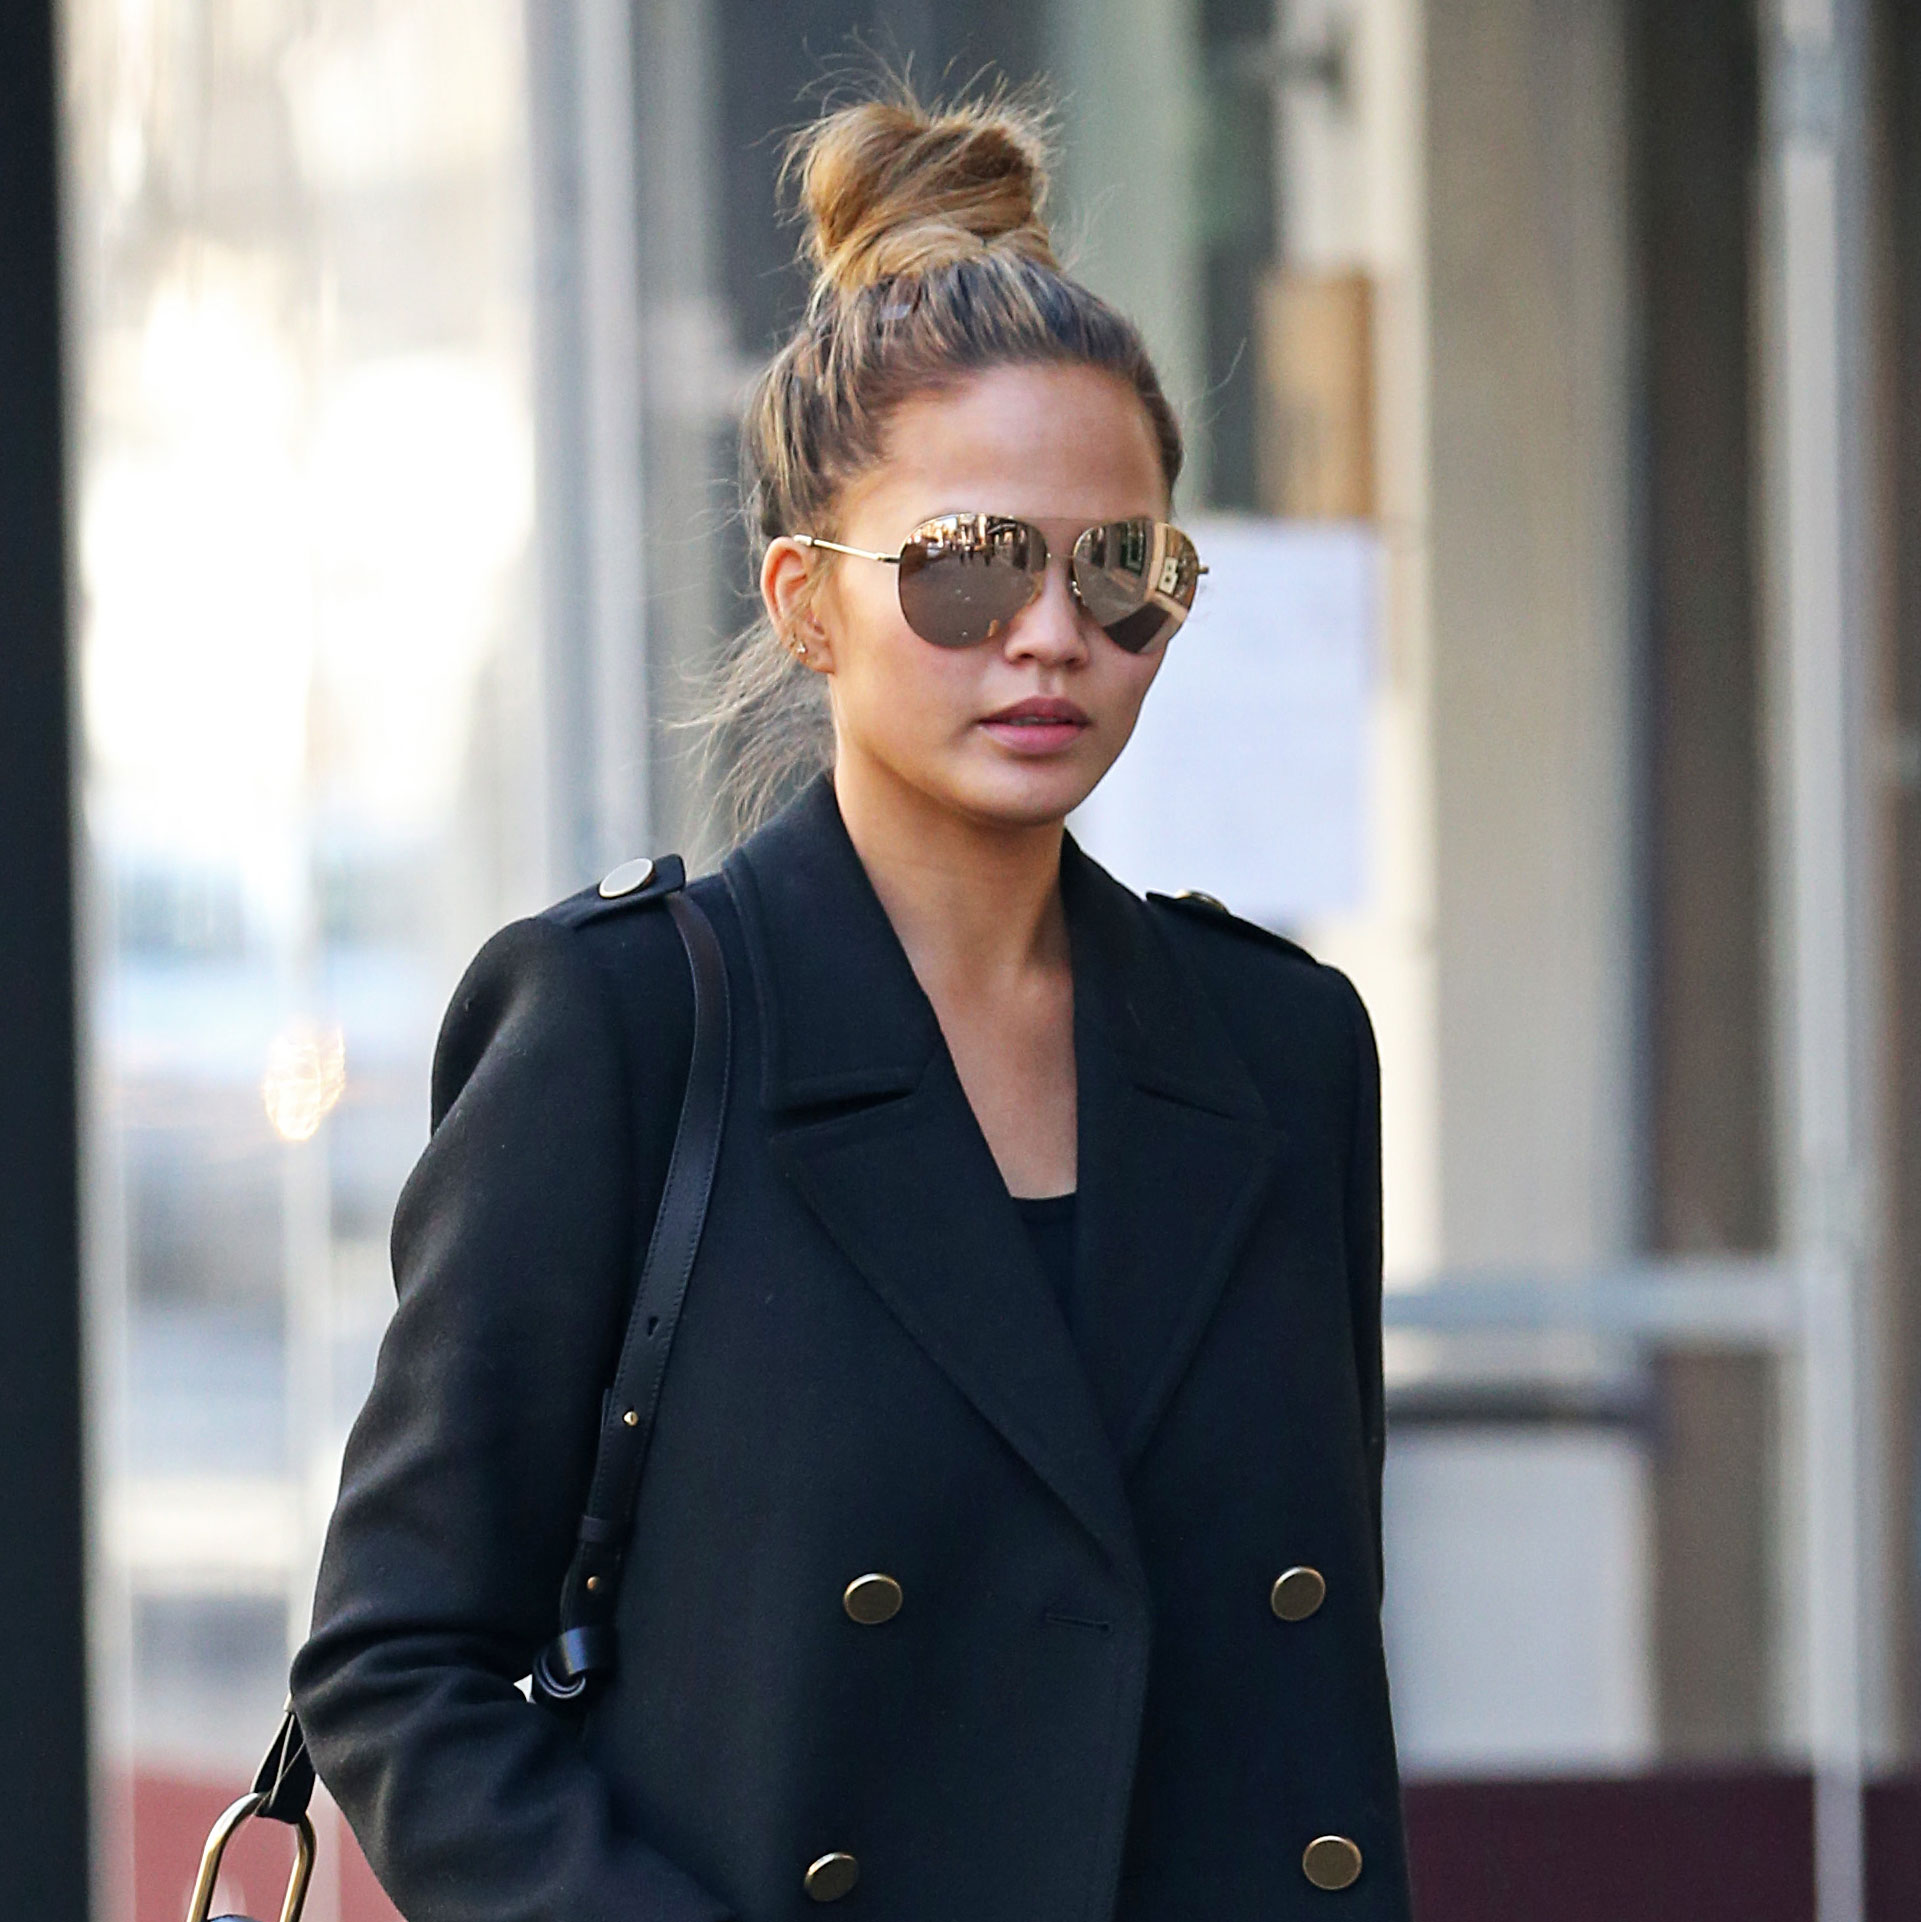 2016 Street Hairstyle Ideas From Celebrities 2019 Haircuts Hairstyles And Hair Colors